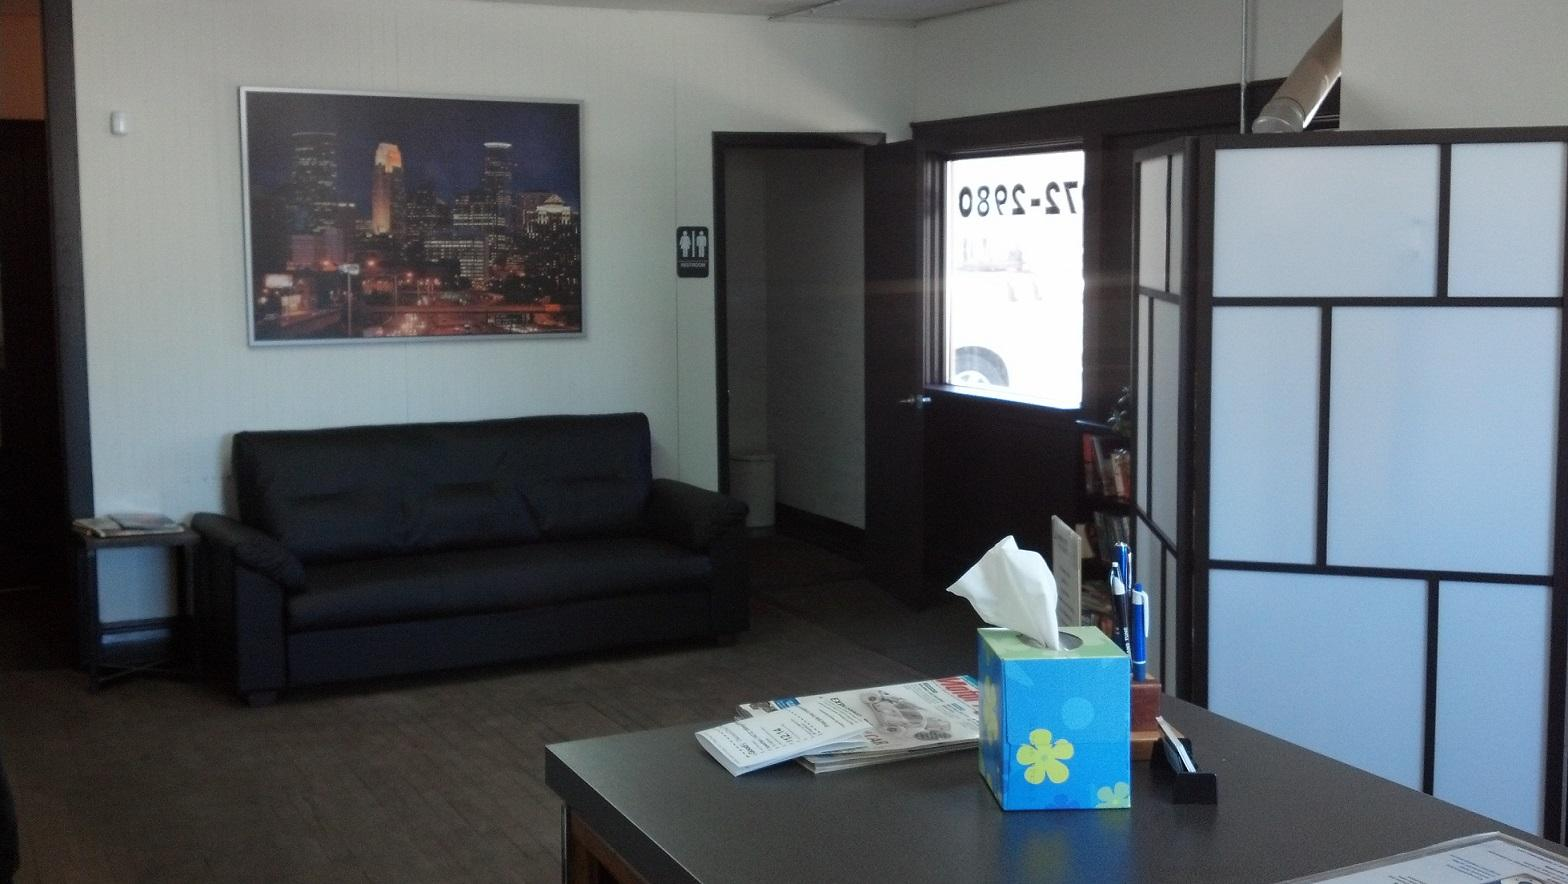 Comfortable waiting area while we service your vehicle.